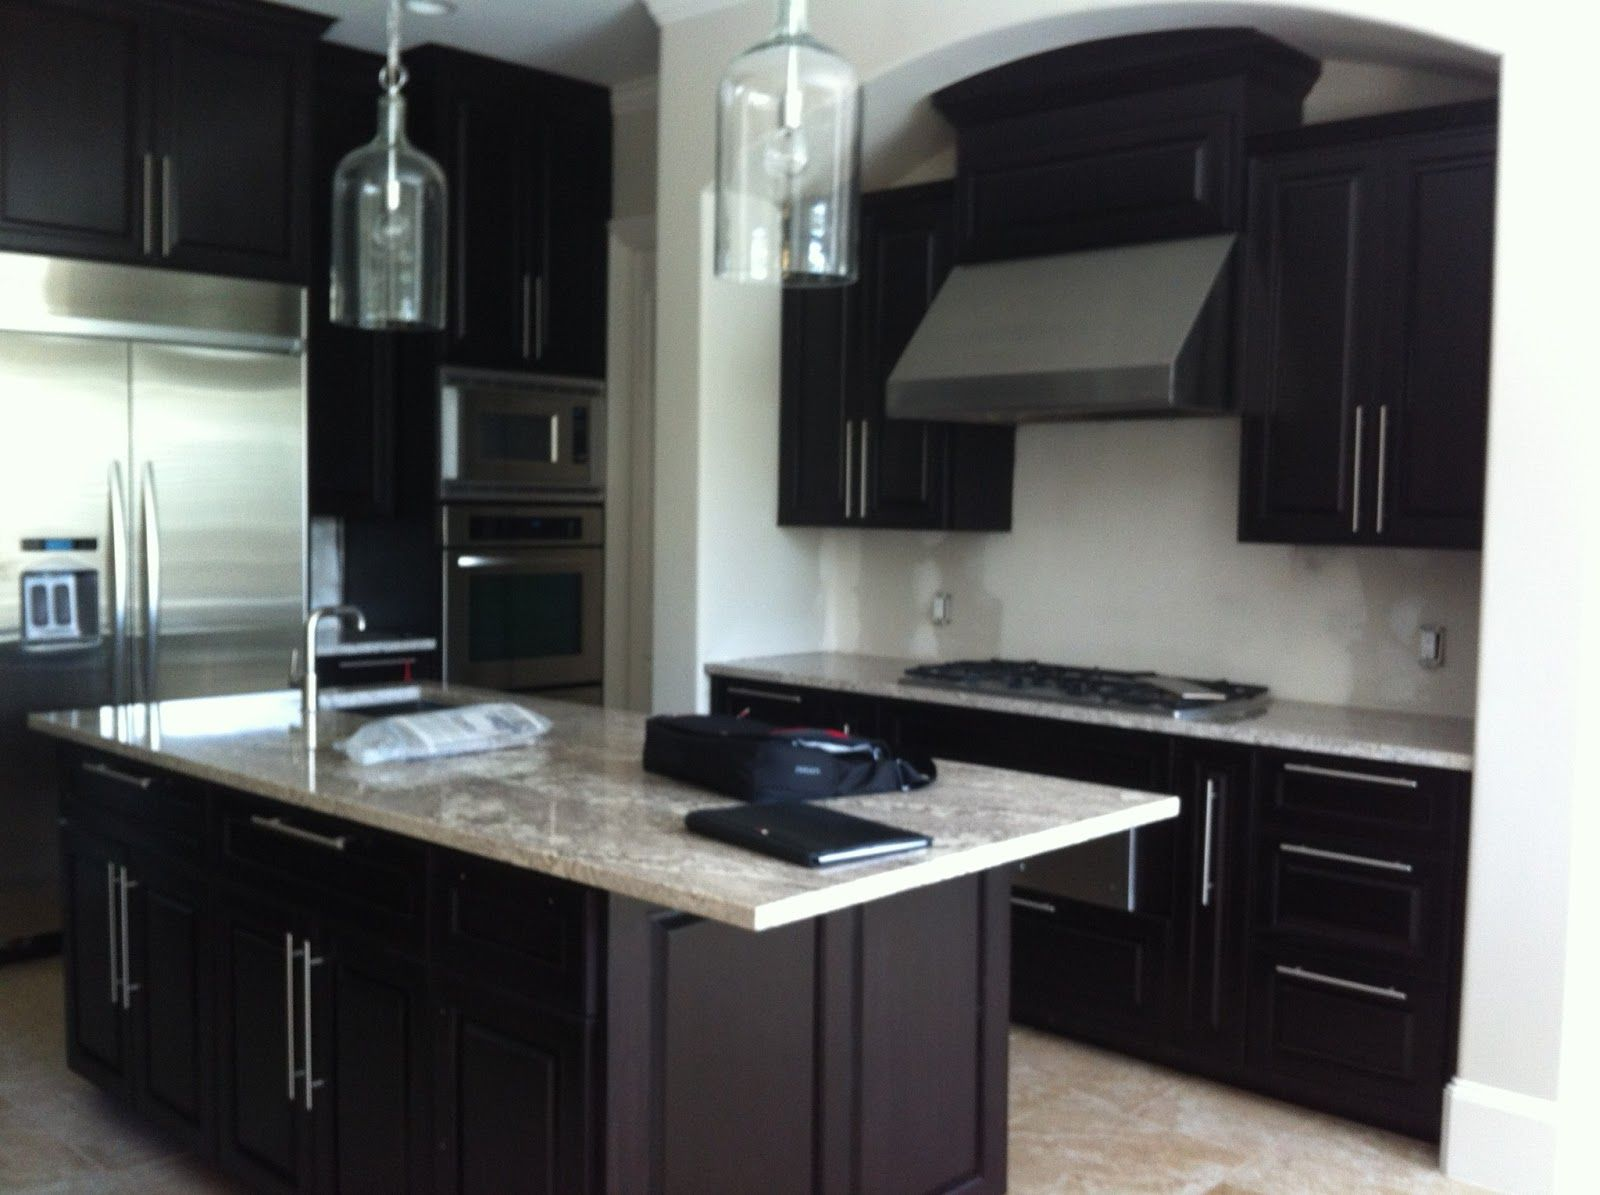 kitchen decorating ideas dark cabinets. Modren Dark Kitchen Decorating Ideas Dark Cabinets Is Needed For You To I